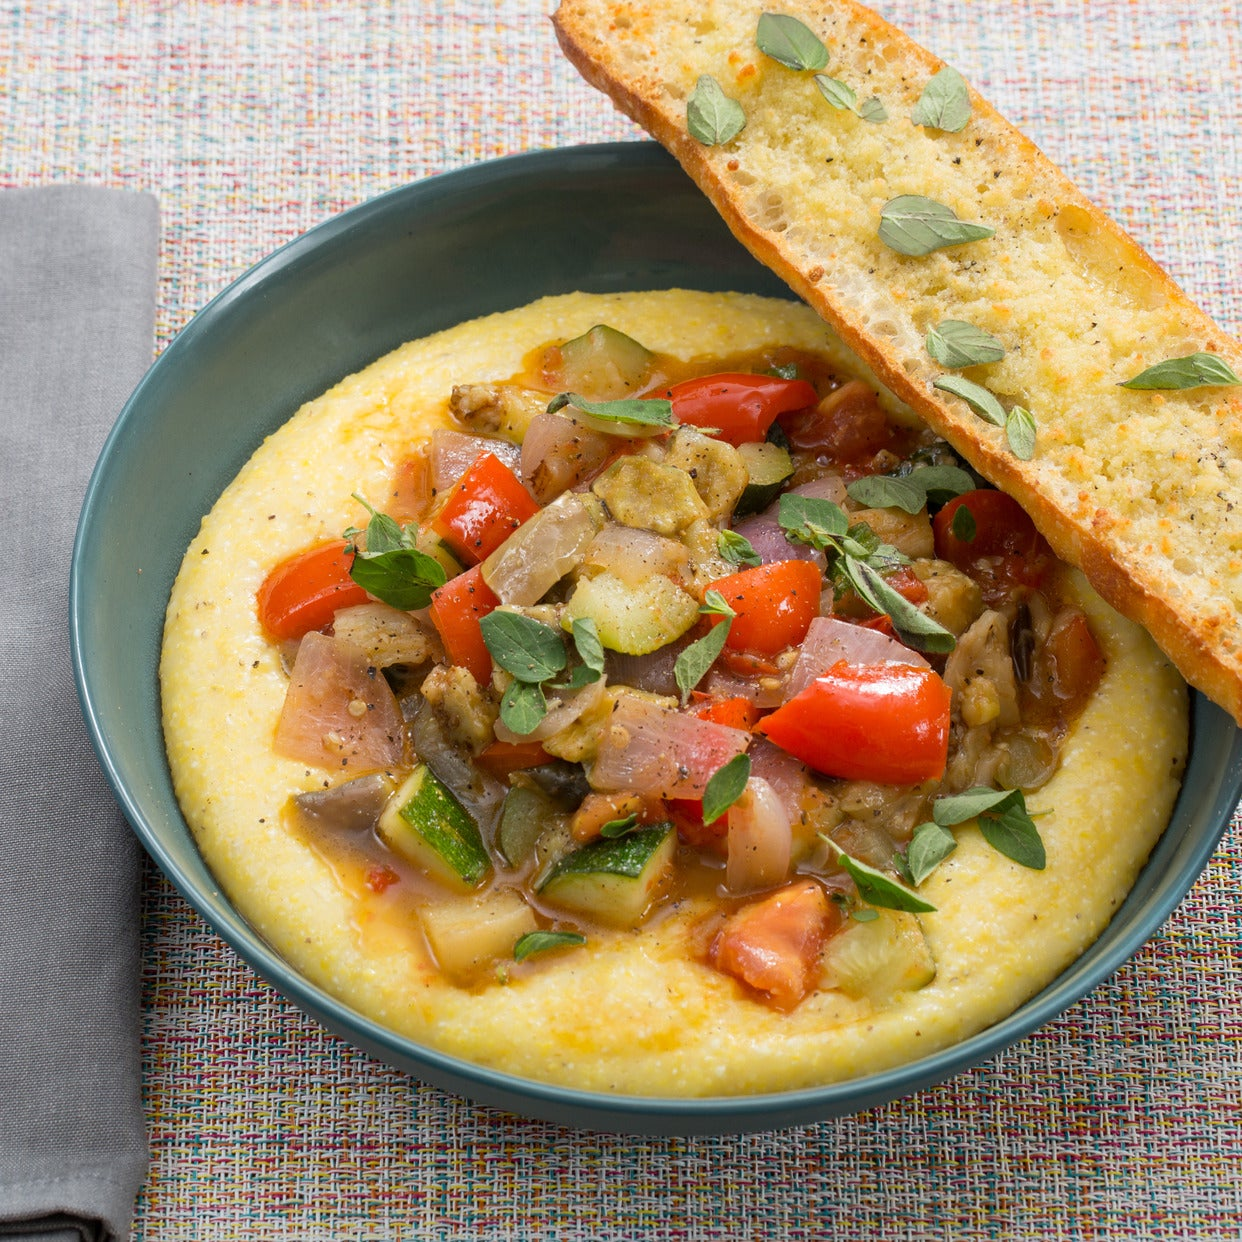 Summer Ratatouille & Parmesan Polenta with Heirloom Eggplant & Garlic-Cheese Toasts